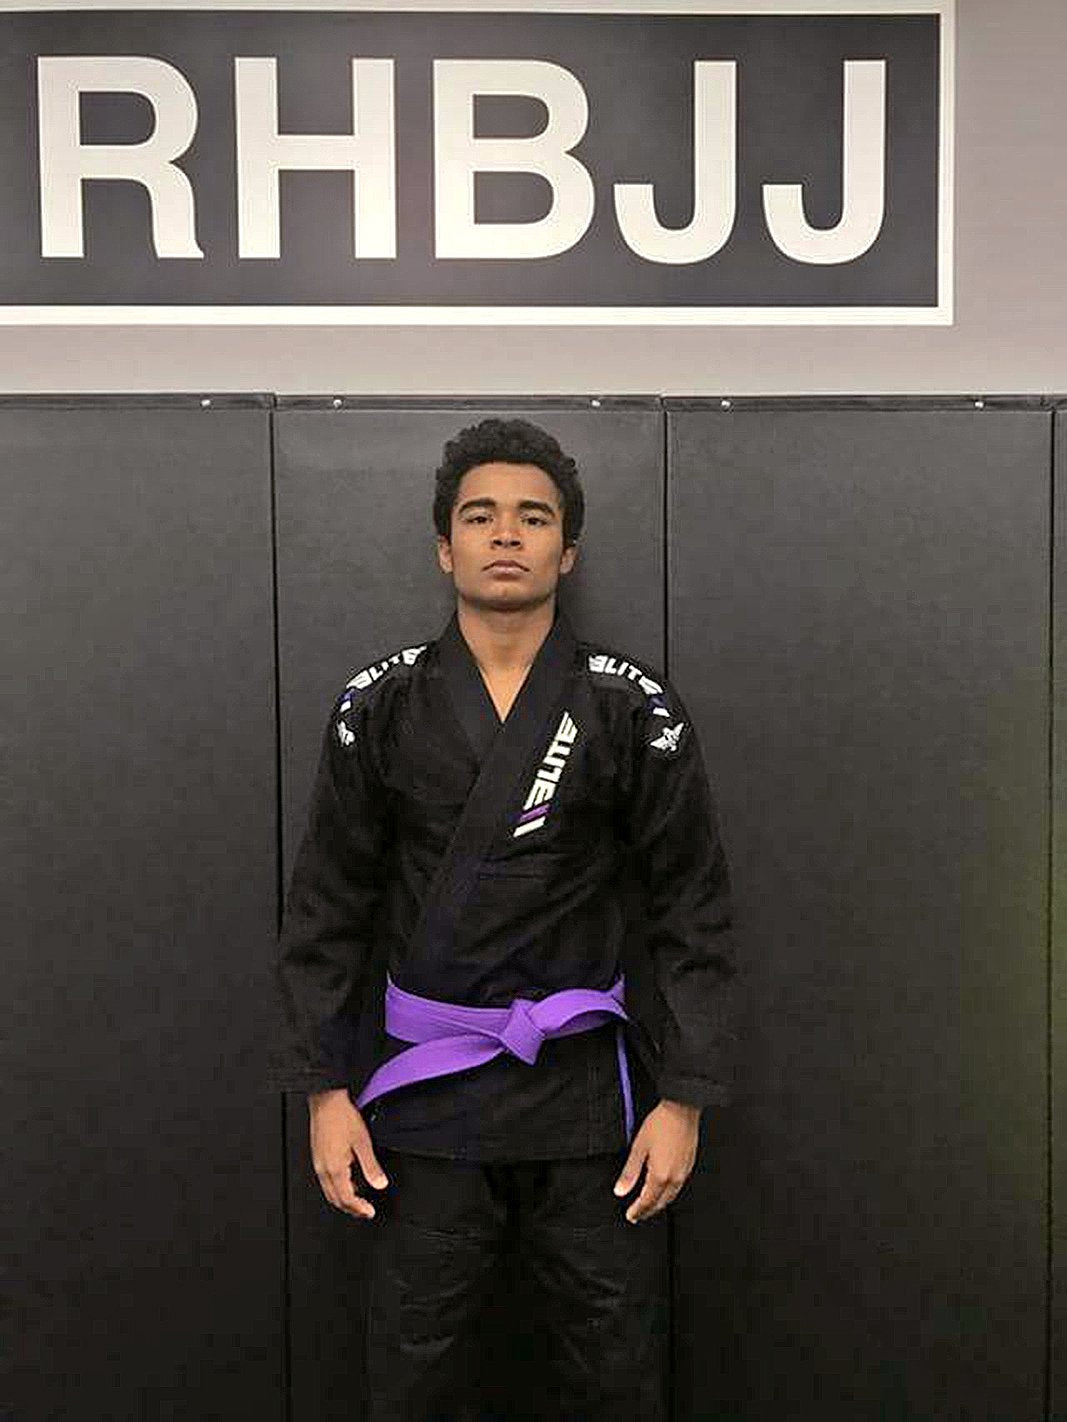 Elite Sports Team Elite Bjj Fighter Johnif de Oliveira Rocha  Image10